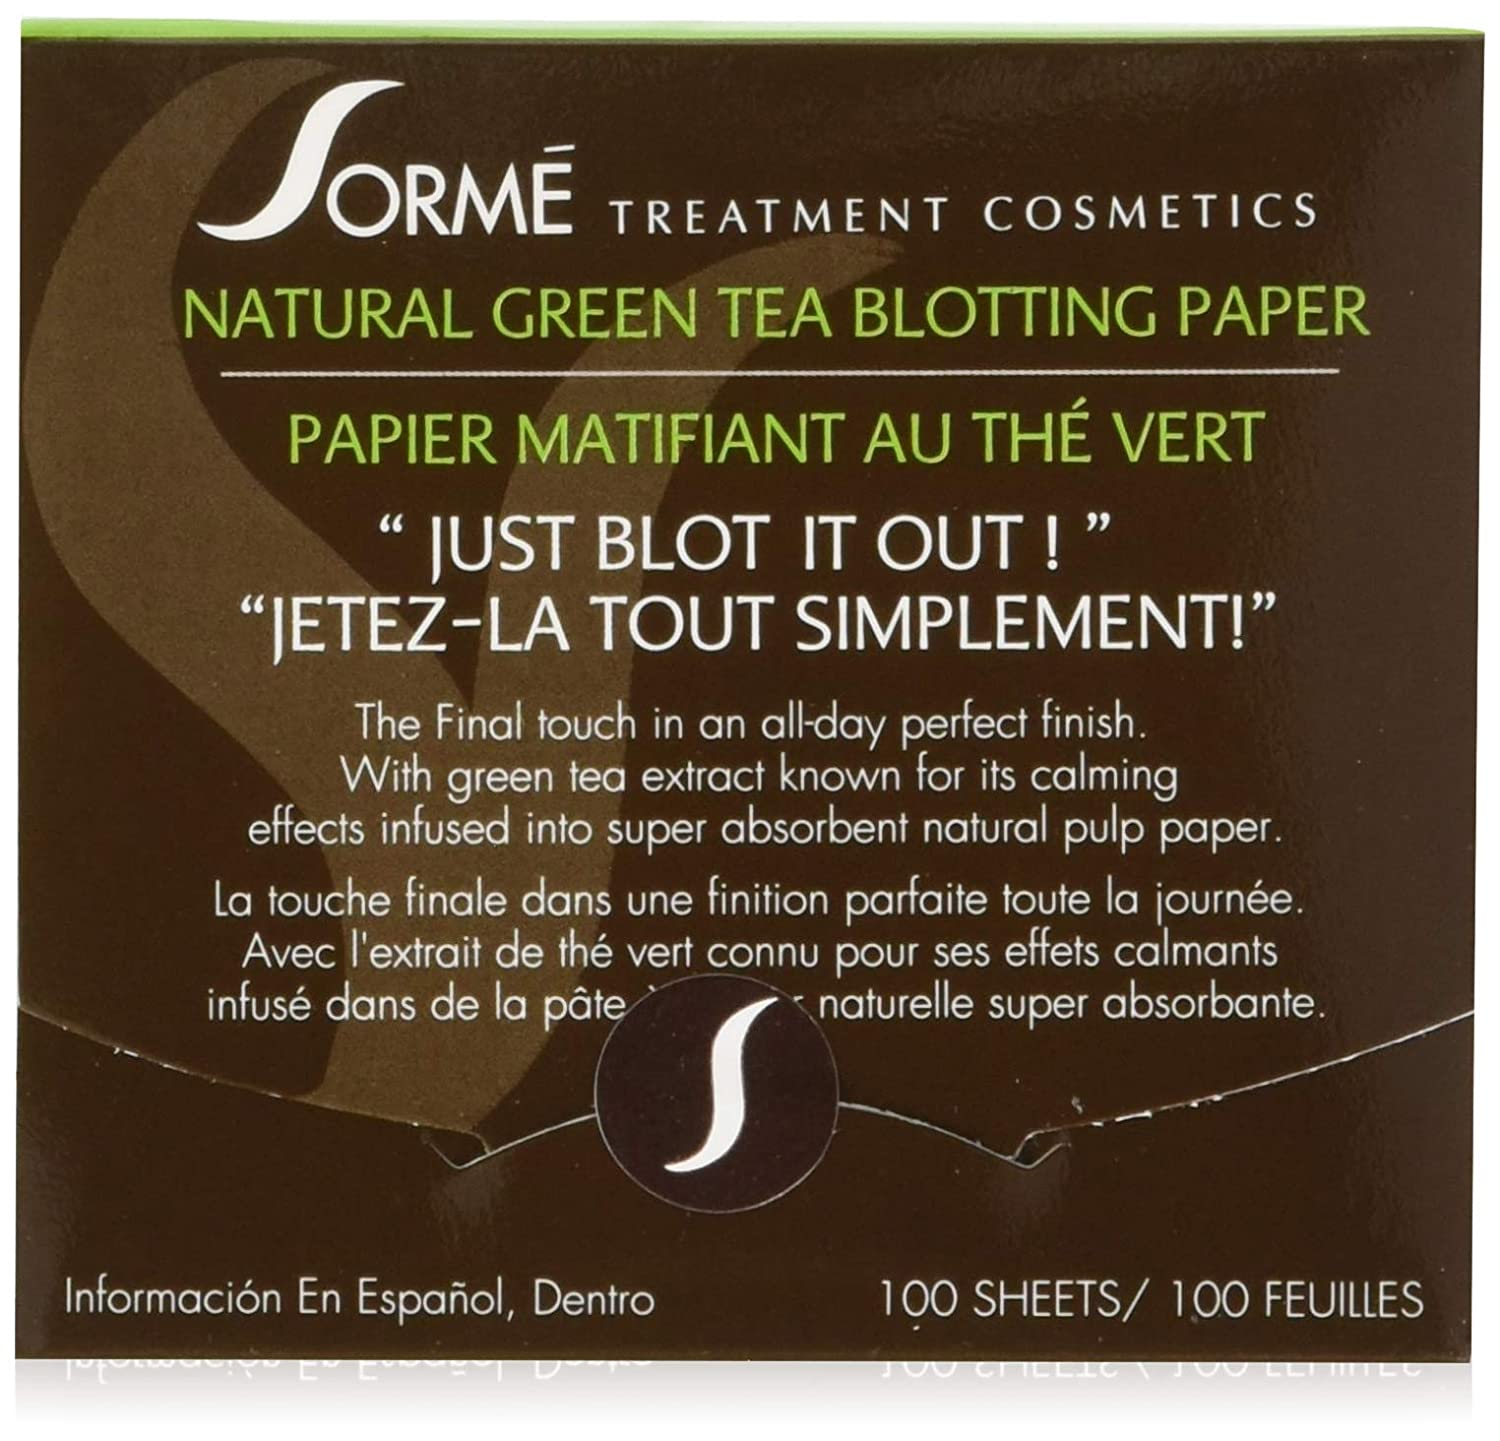 Sorme' Treatment Cosmetics Blotting Paper, Green Tea, 0.5 oz.